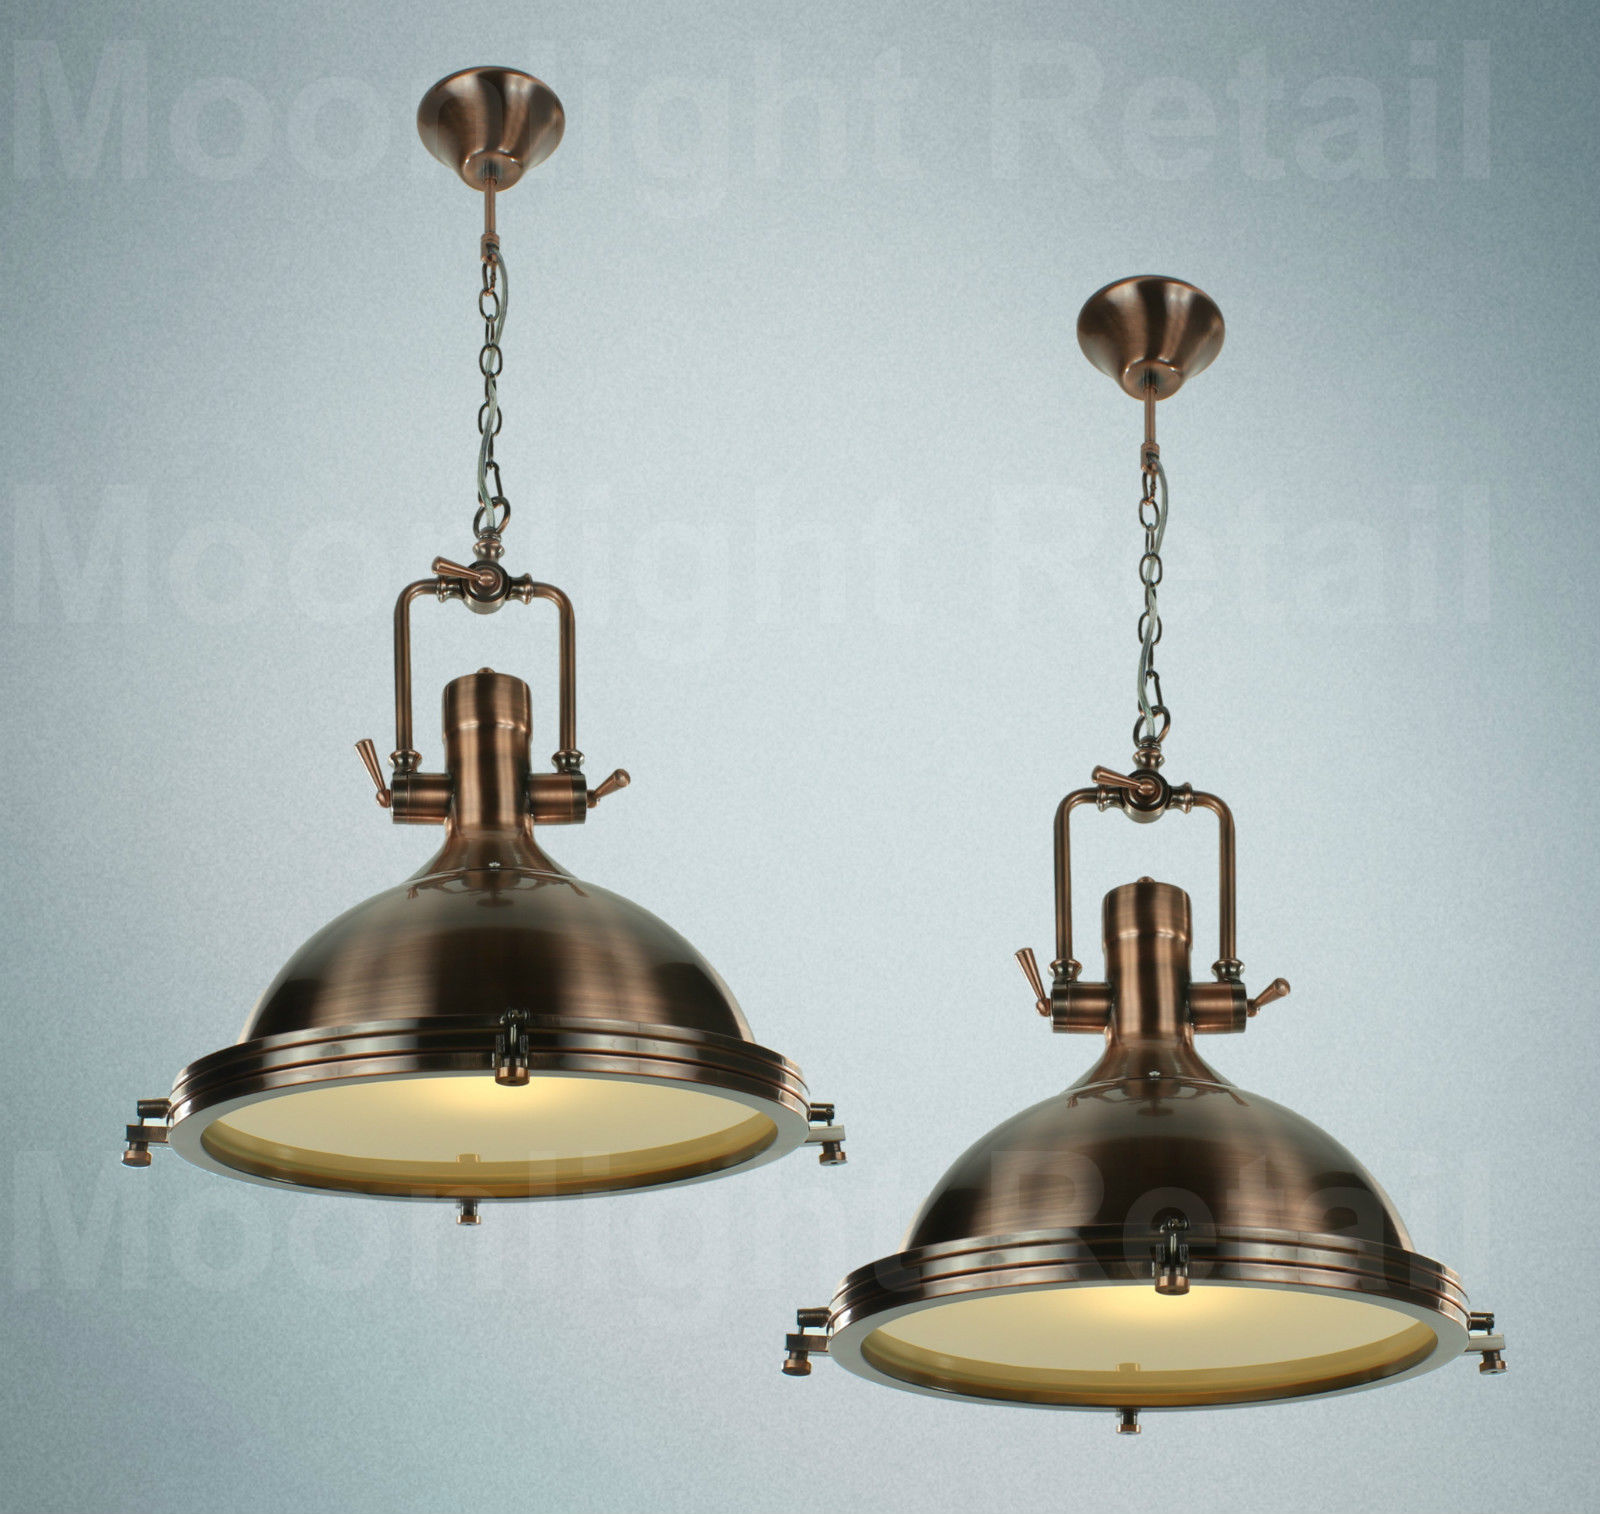 Searchlight Porthole Nautical Industrial Light Vintage Metal Ceiling Copper Or Moonlight Retail